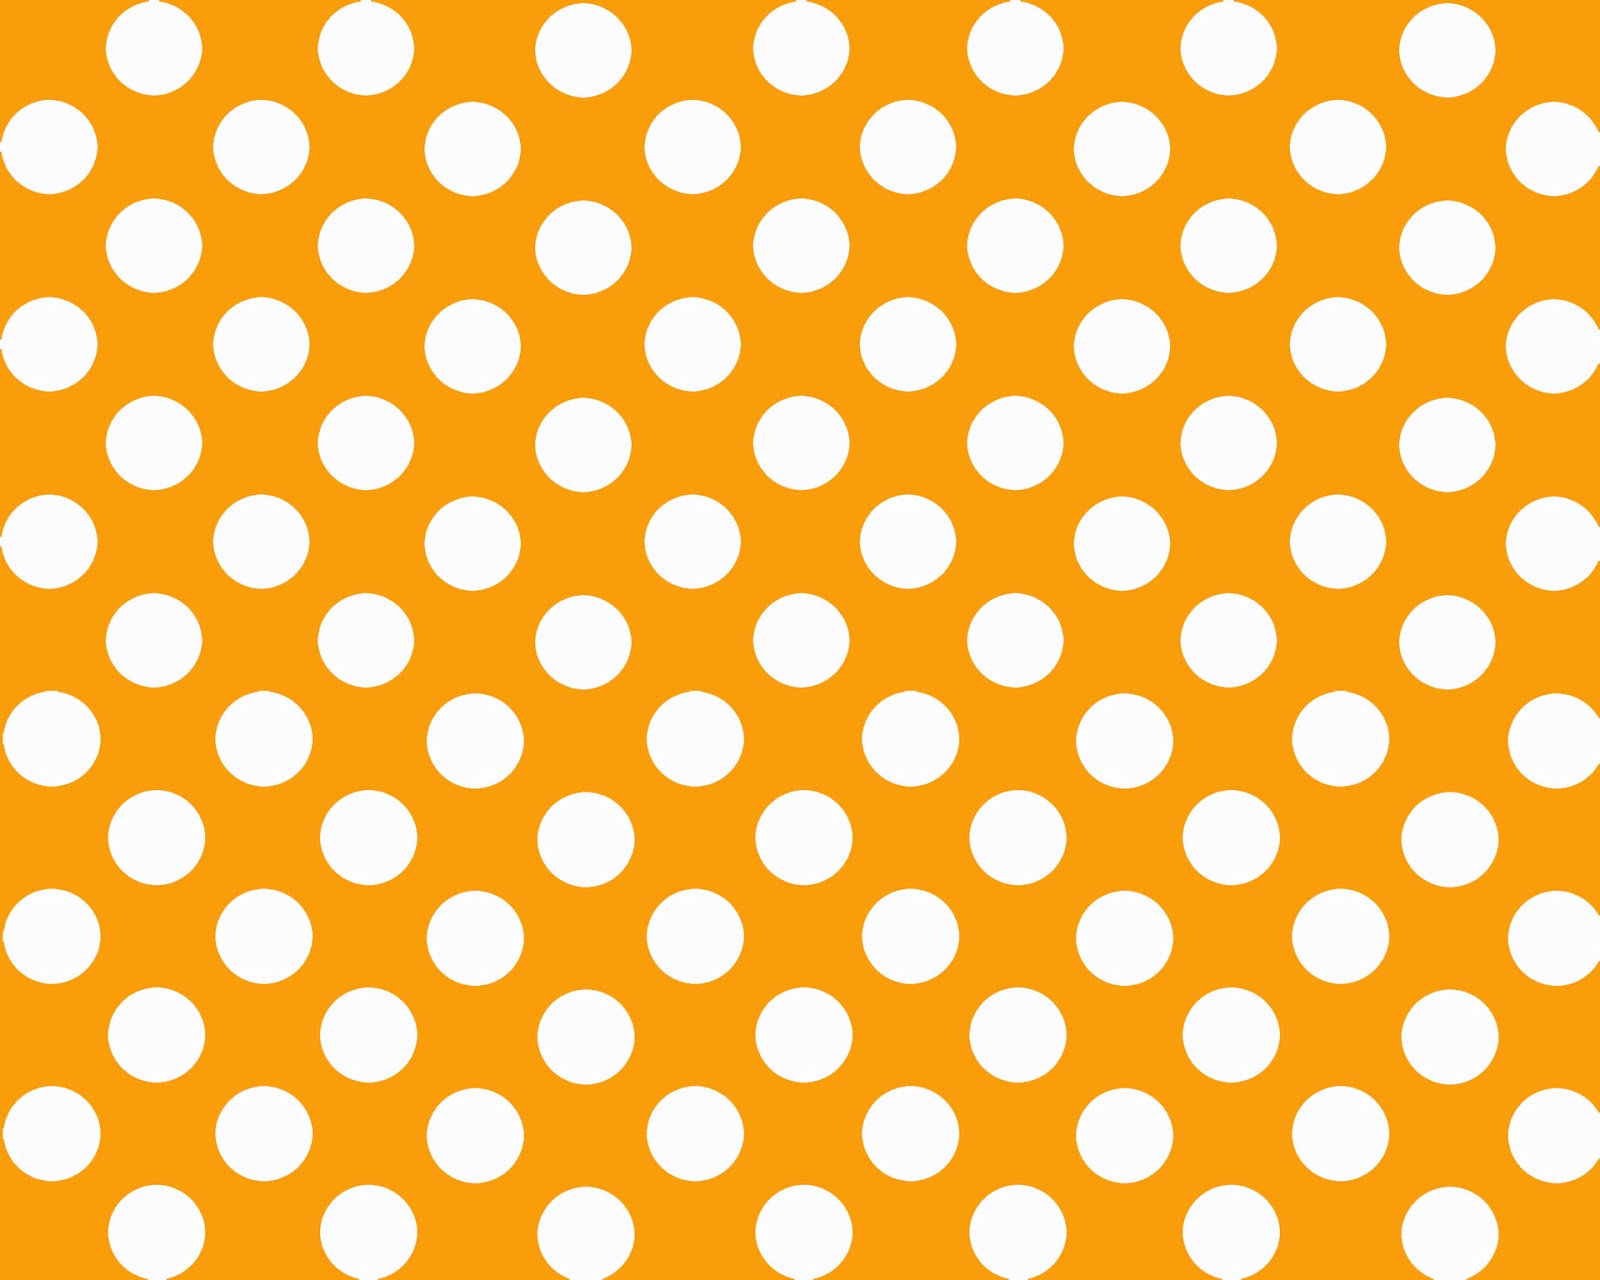 polka dots wallpaper - photo #43